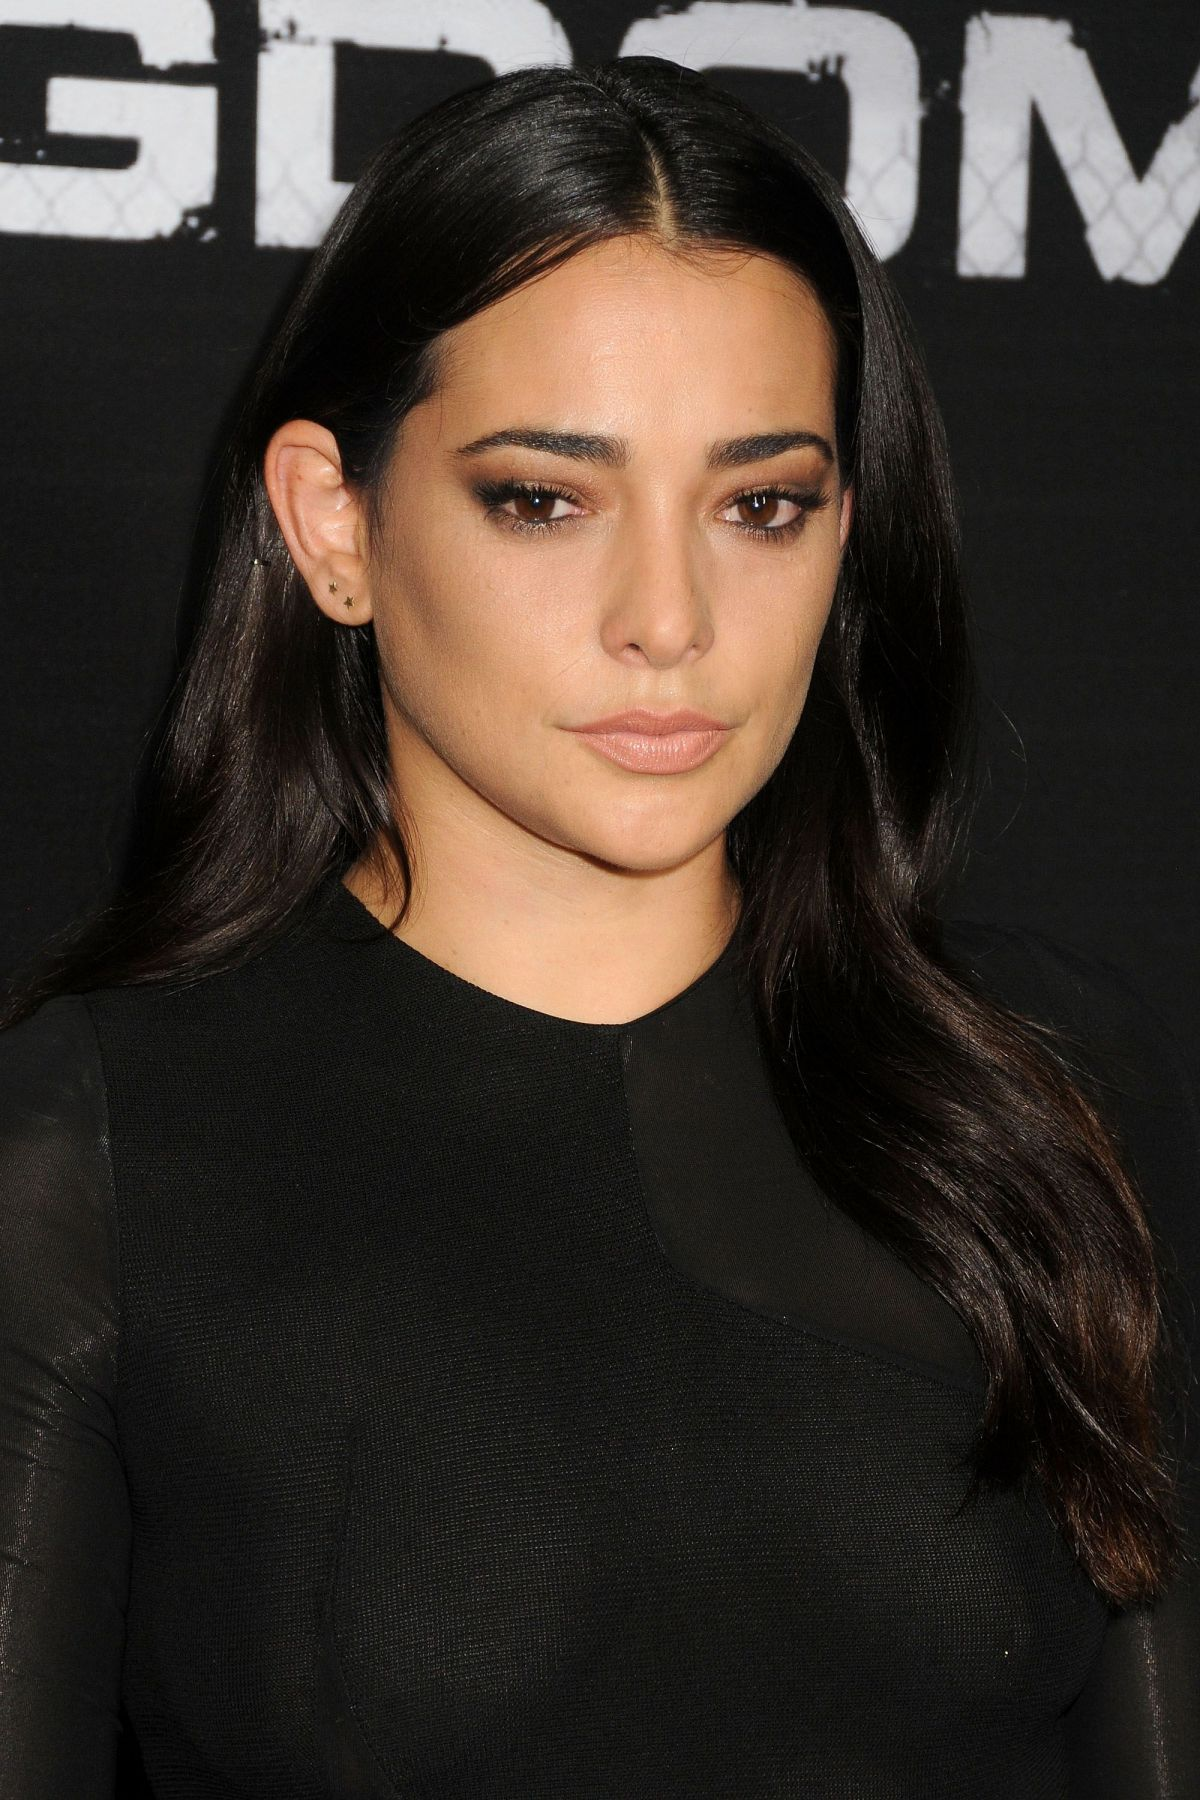 NATALIE MARTINEZ at Kingdom Season 2 Premiere in West Hollywood 10/06/2015